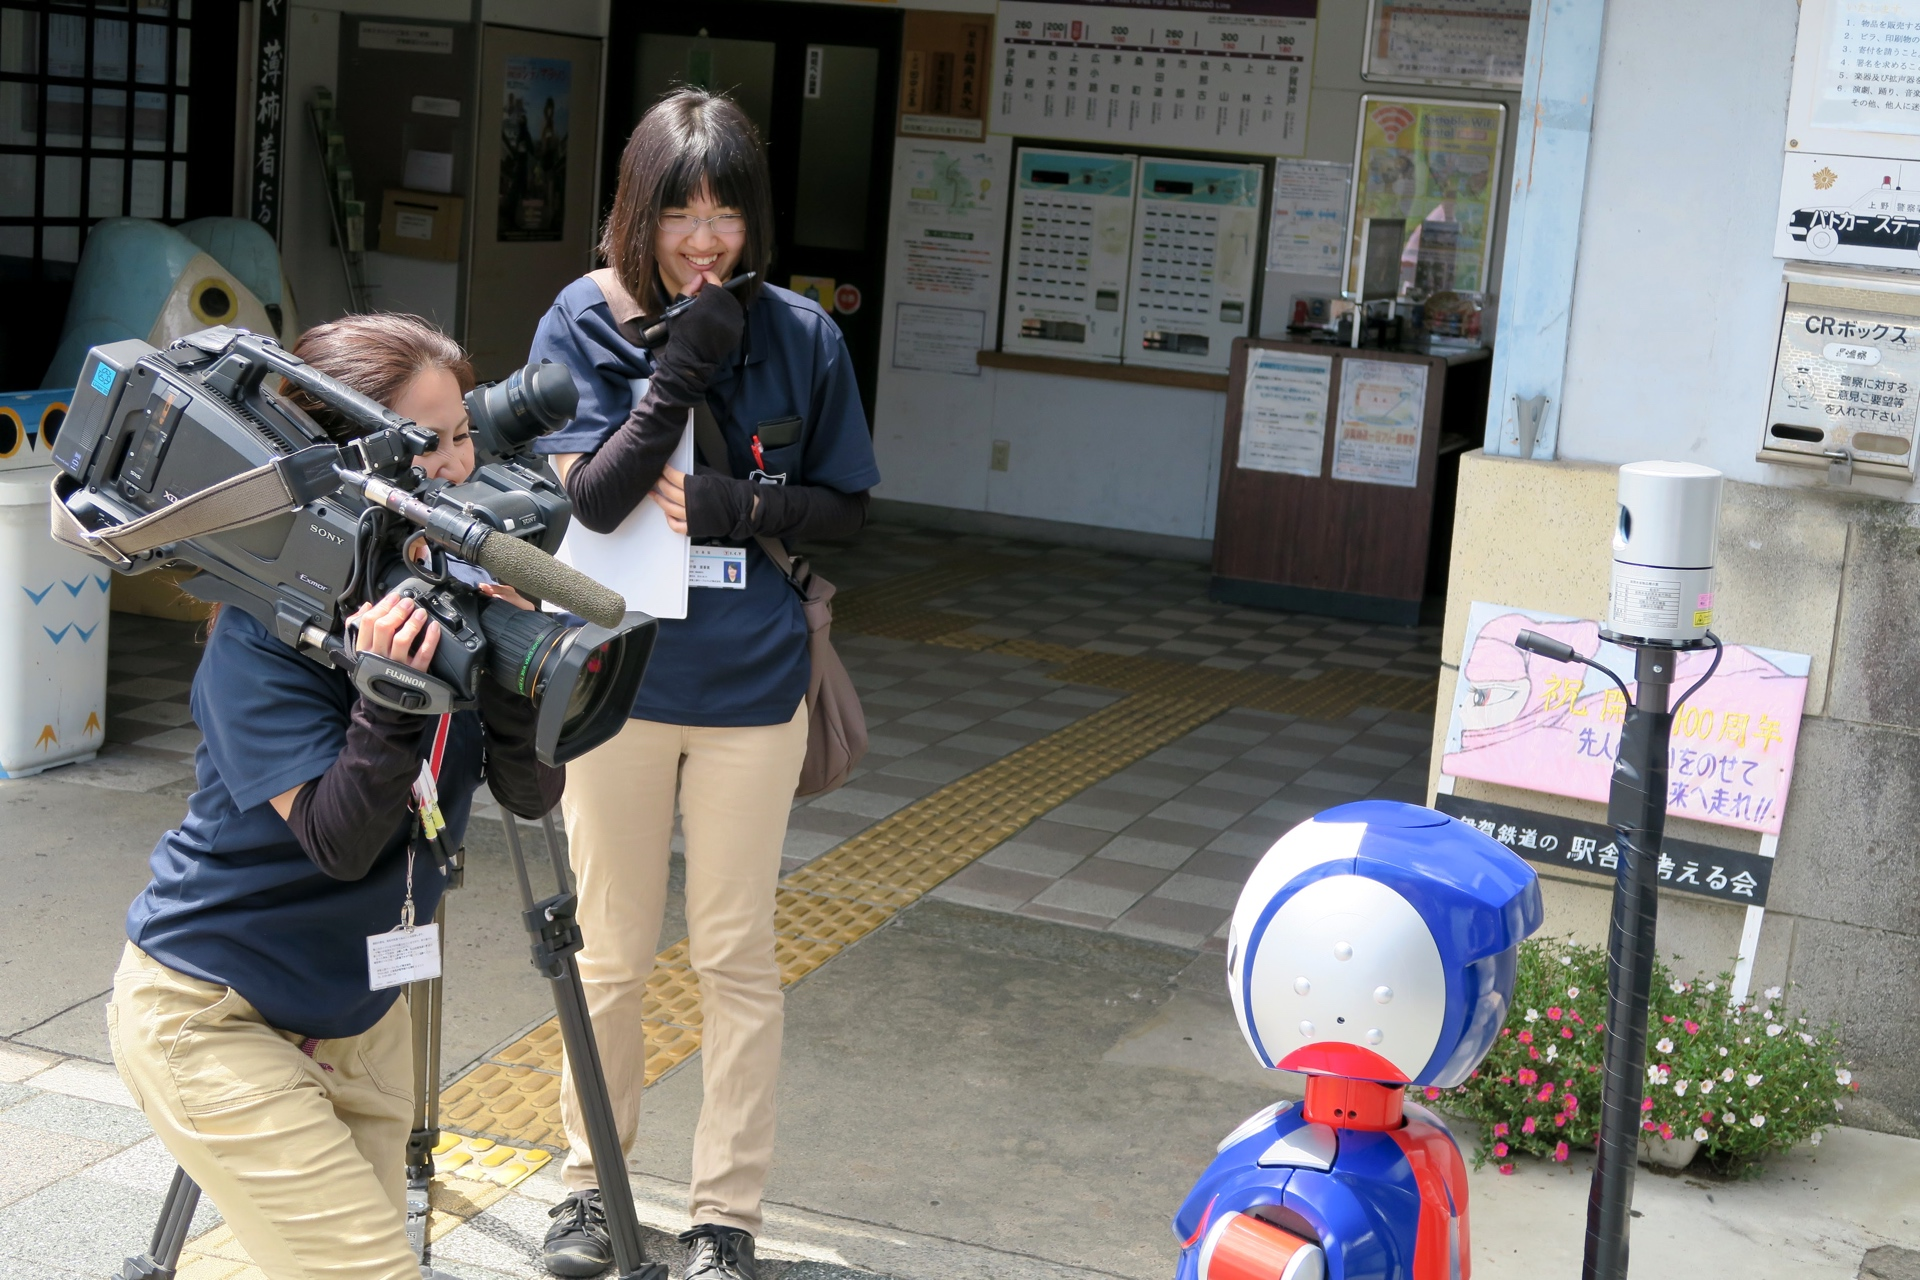 Local TV staff engaging with Robovie.